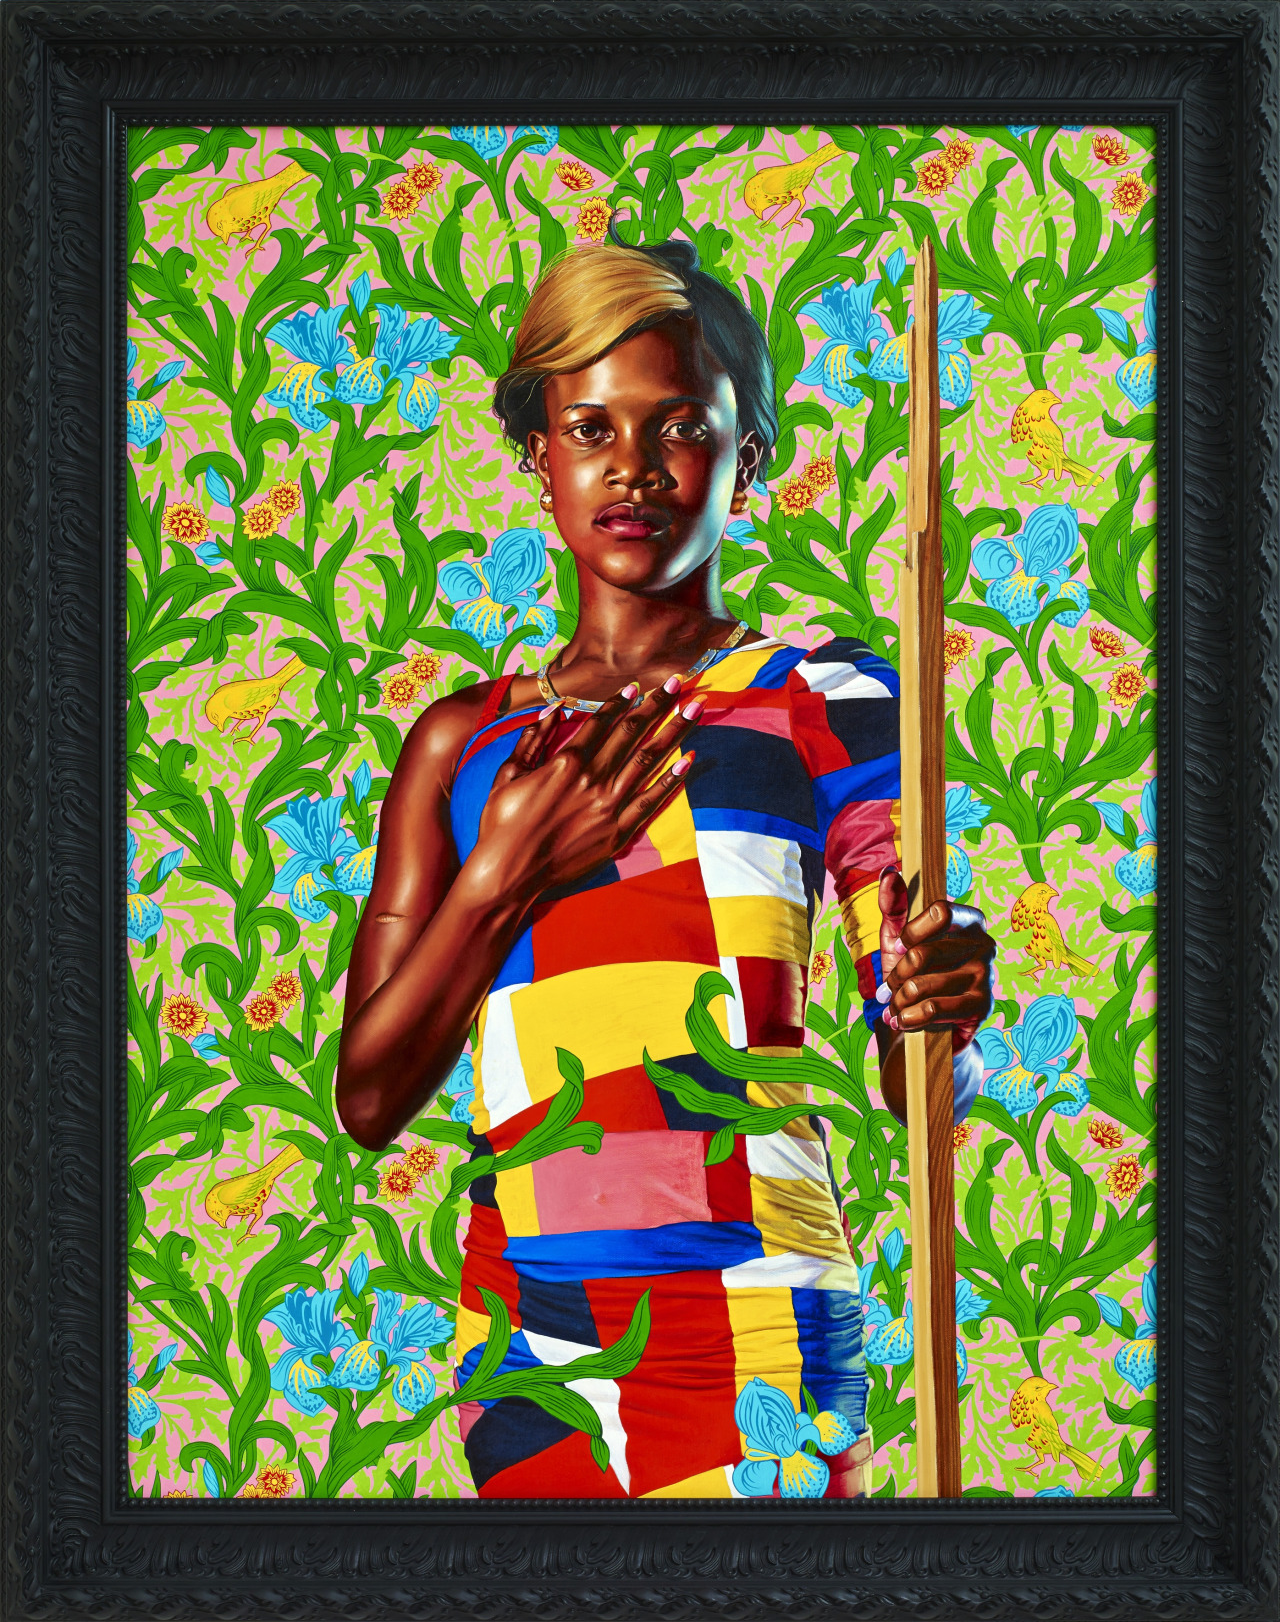 St. John the Baptist in the Wilderness 2013 by Kehinde